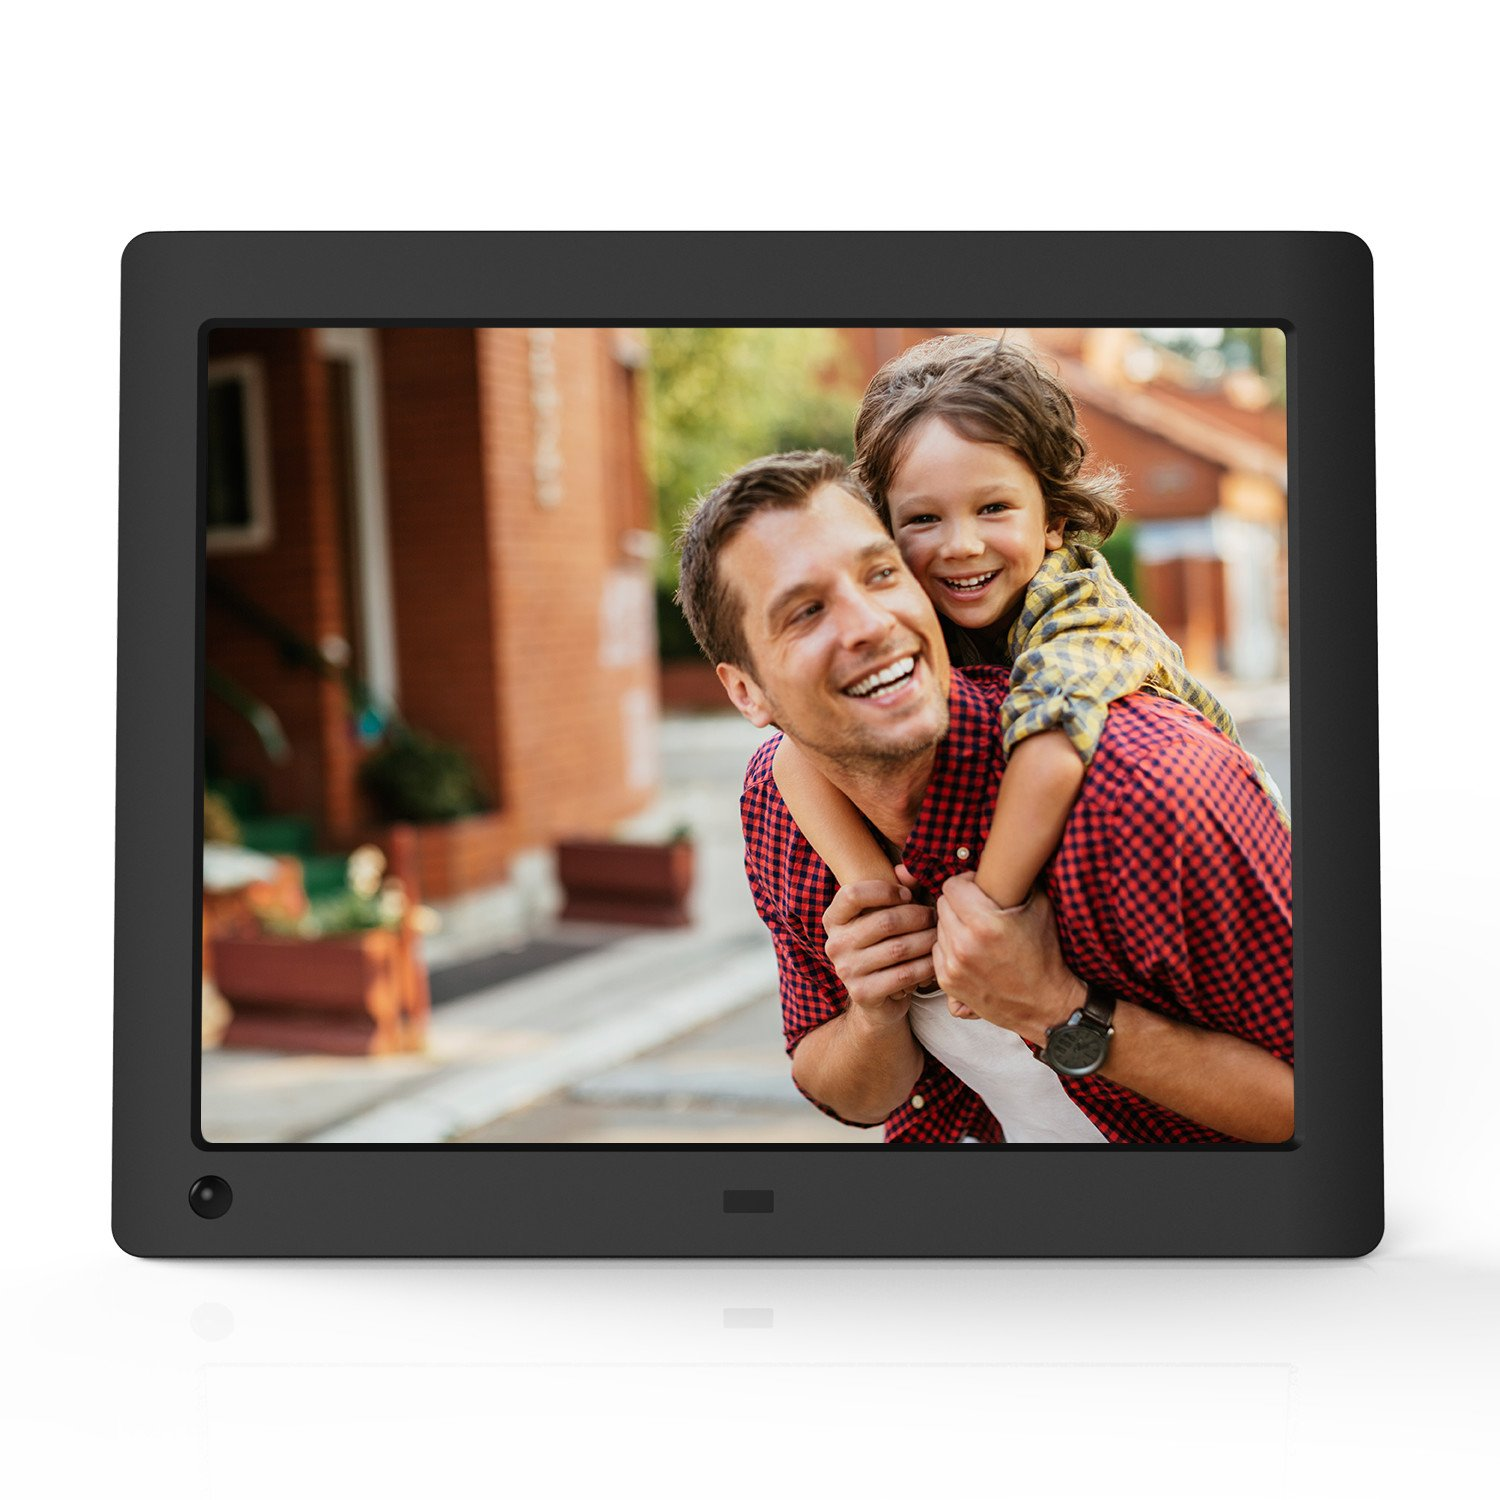 NIX Advance 8 Inch Hi-Res Digital Photo & HD Video Frame with Hu-Motion Sensor (X08E) by NIX